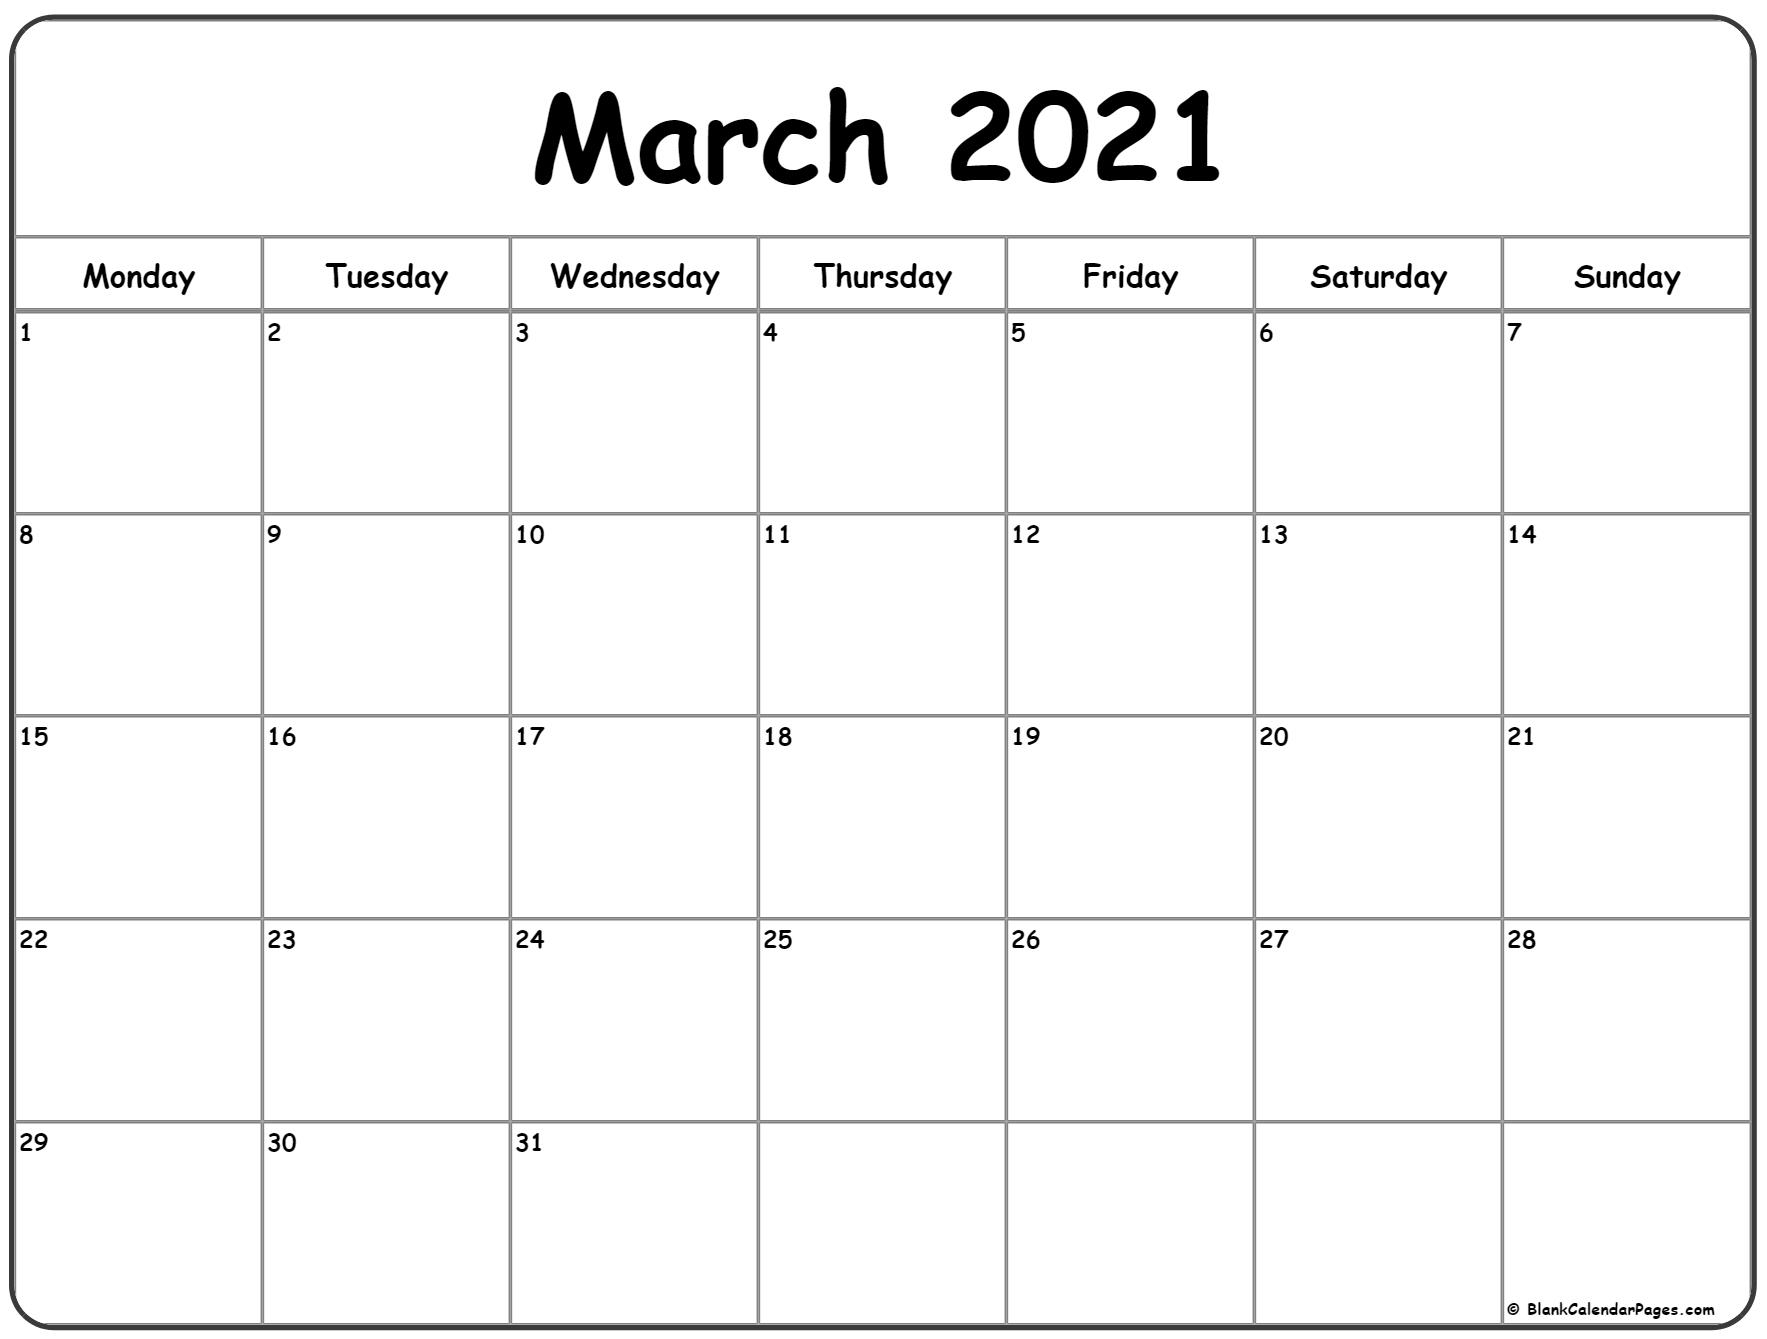 March 2021 Monday Calendar | Monday To Sunday